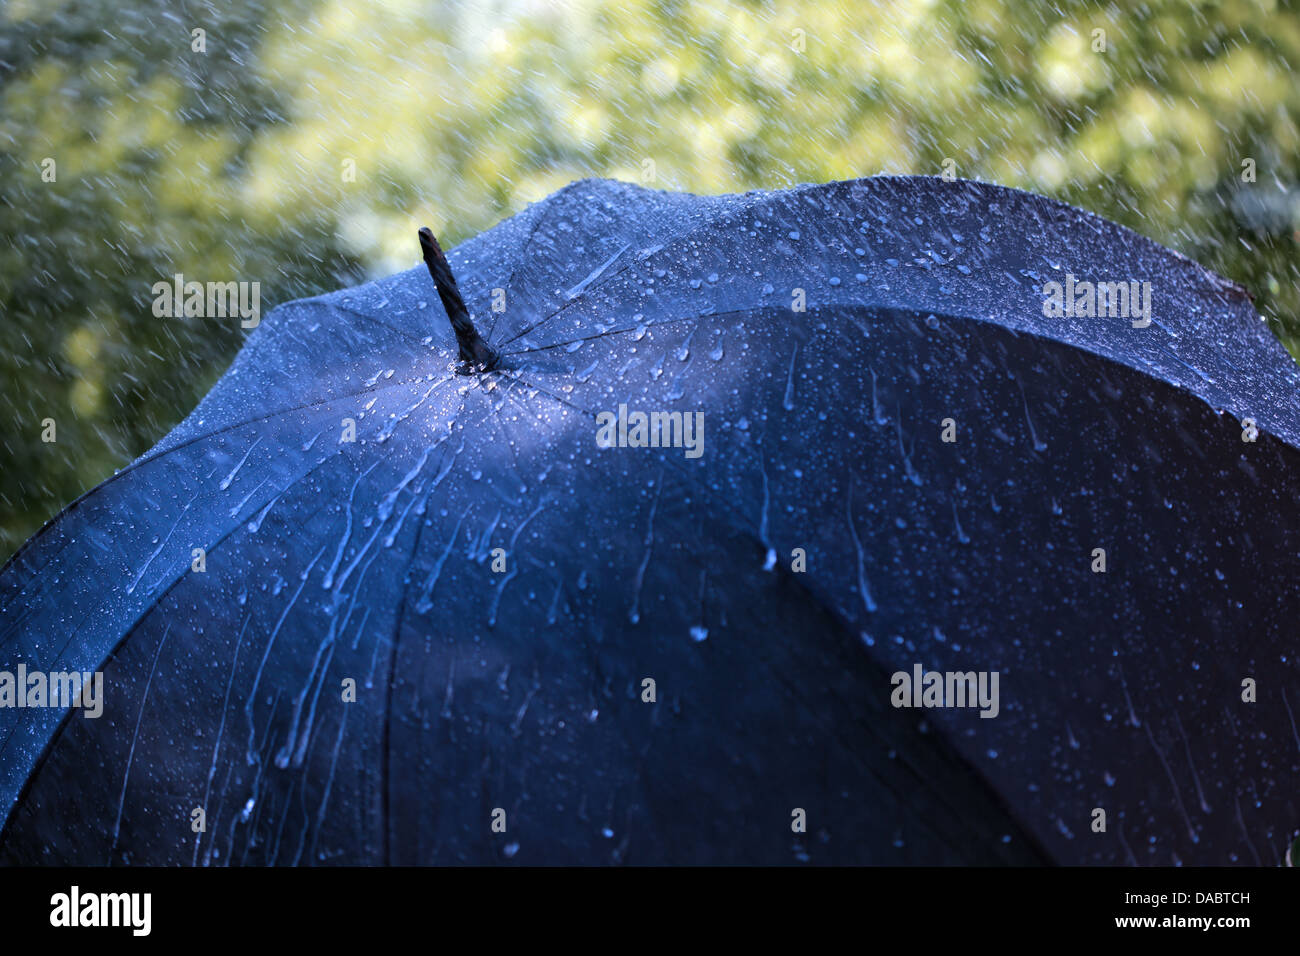 Rain on umbrella - Stock Image